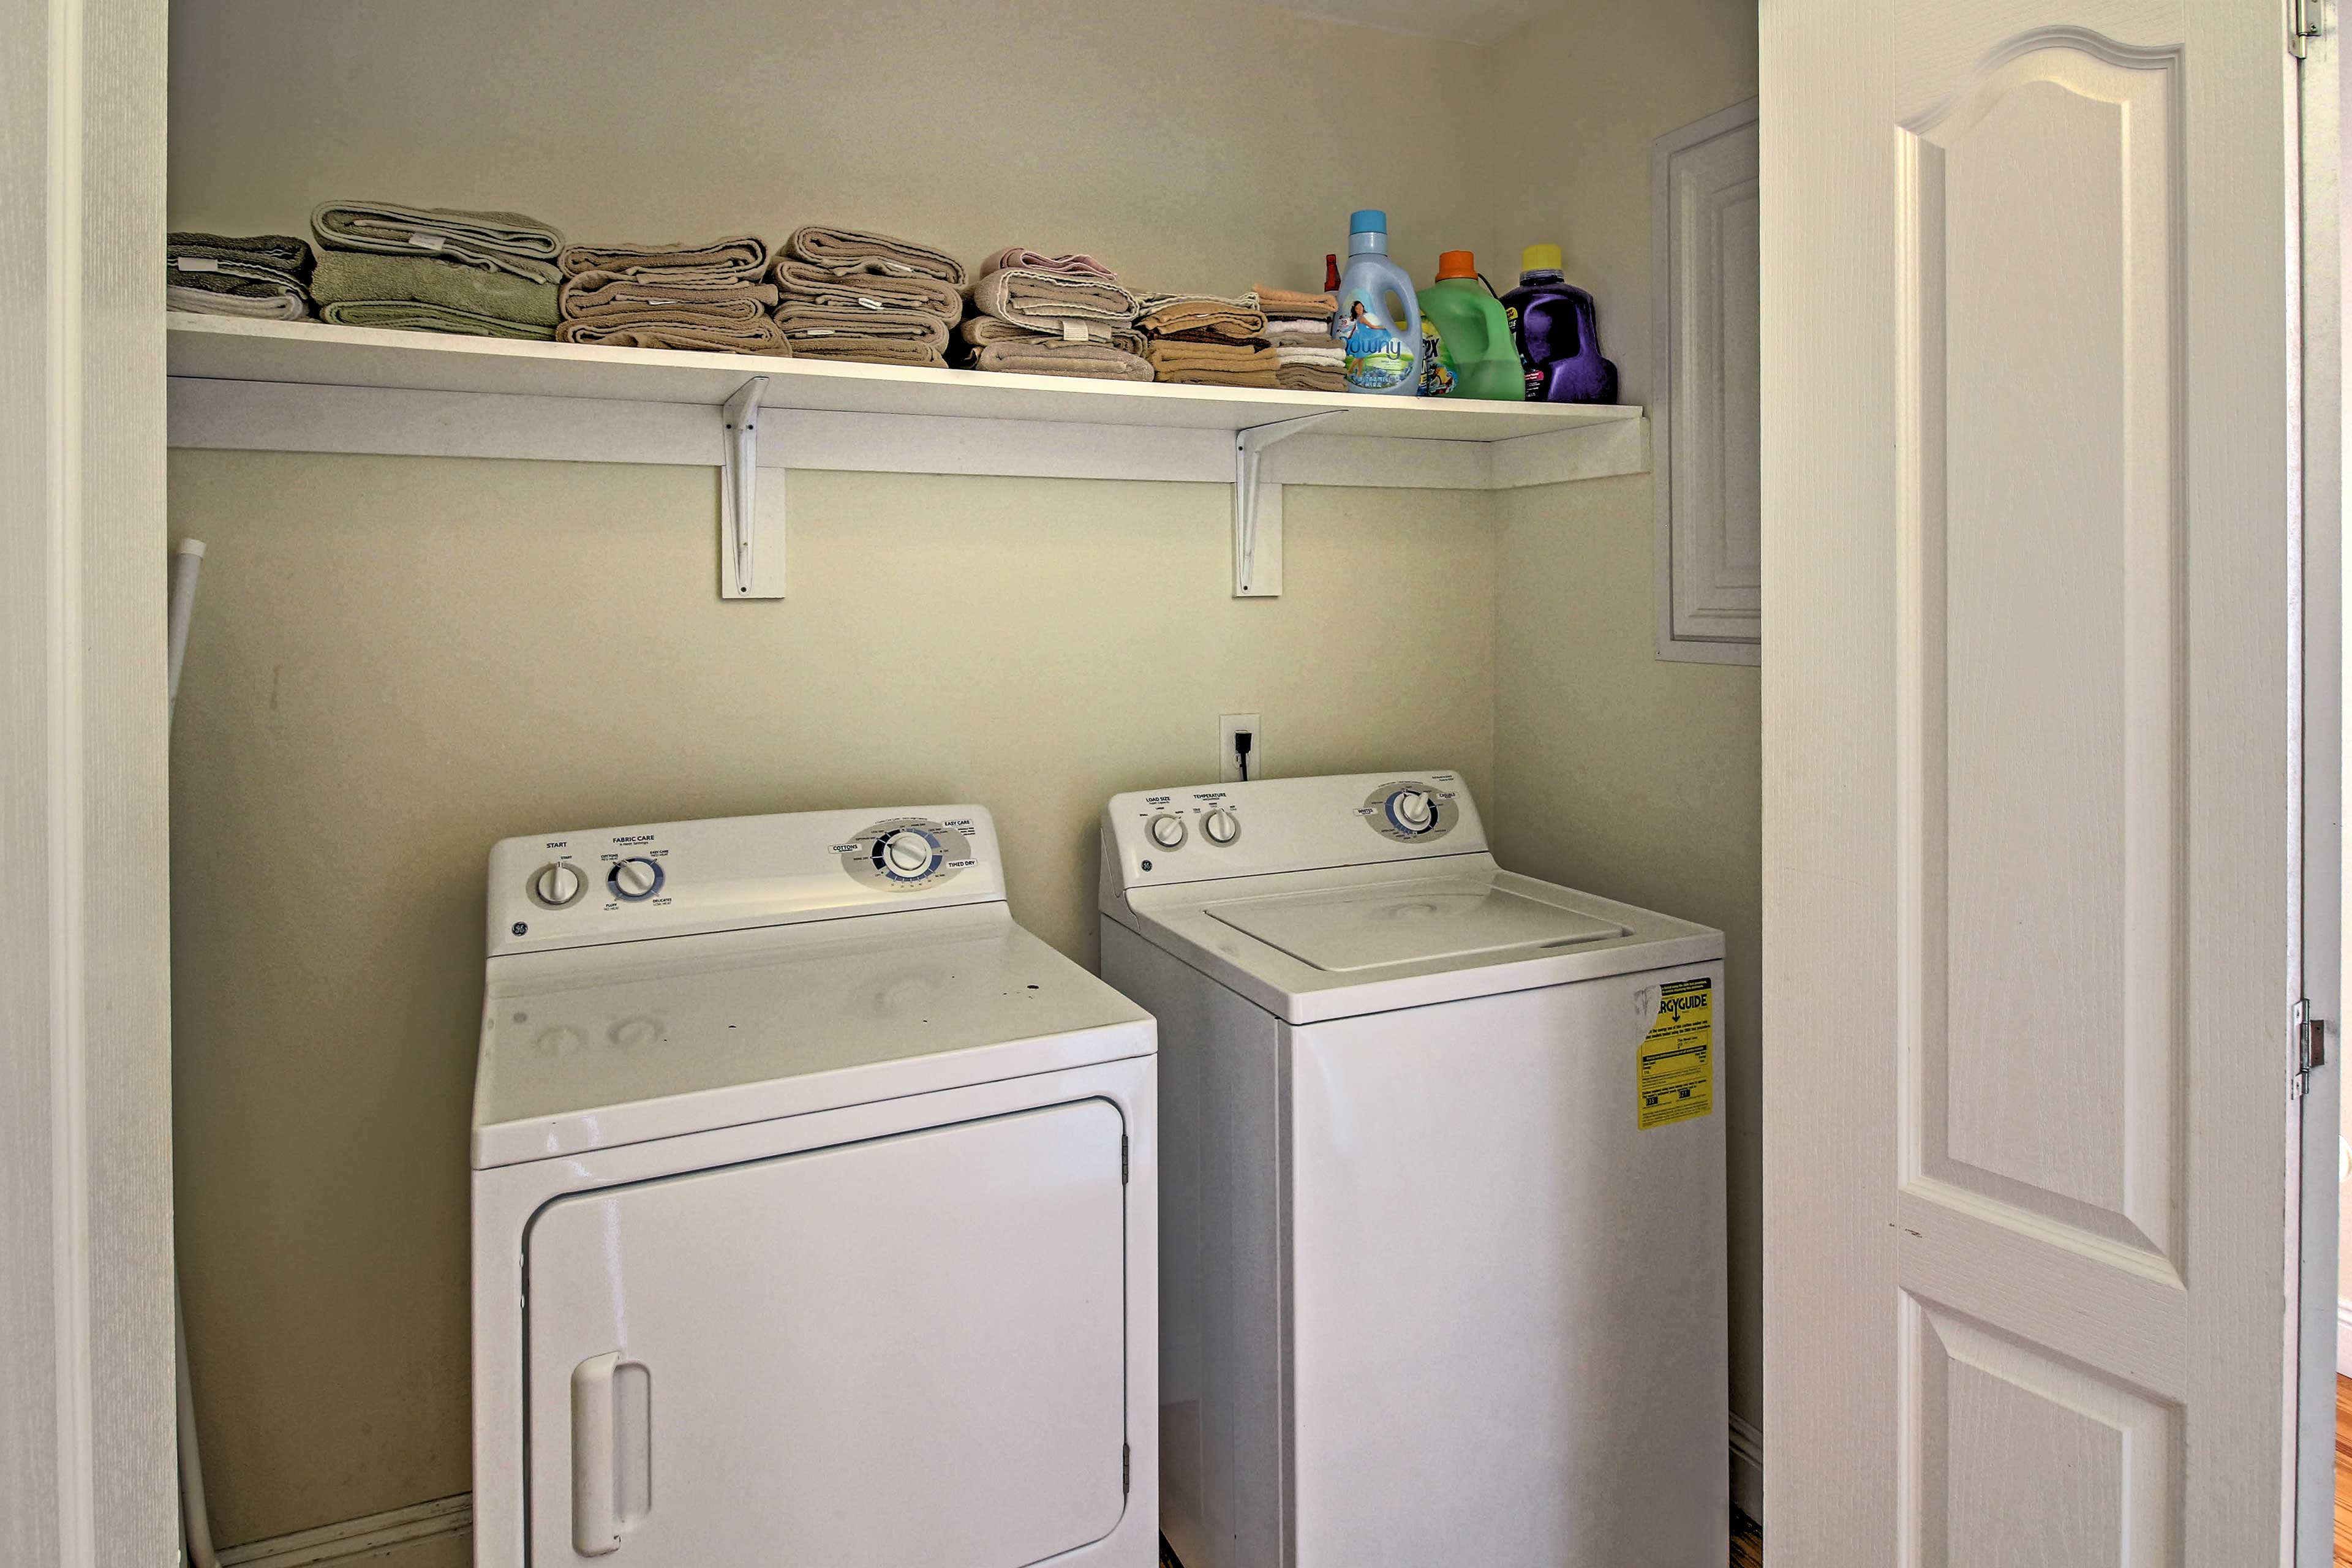 No need to pack your entire wardrobe as this home offers a washer and dryer.